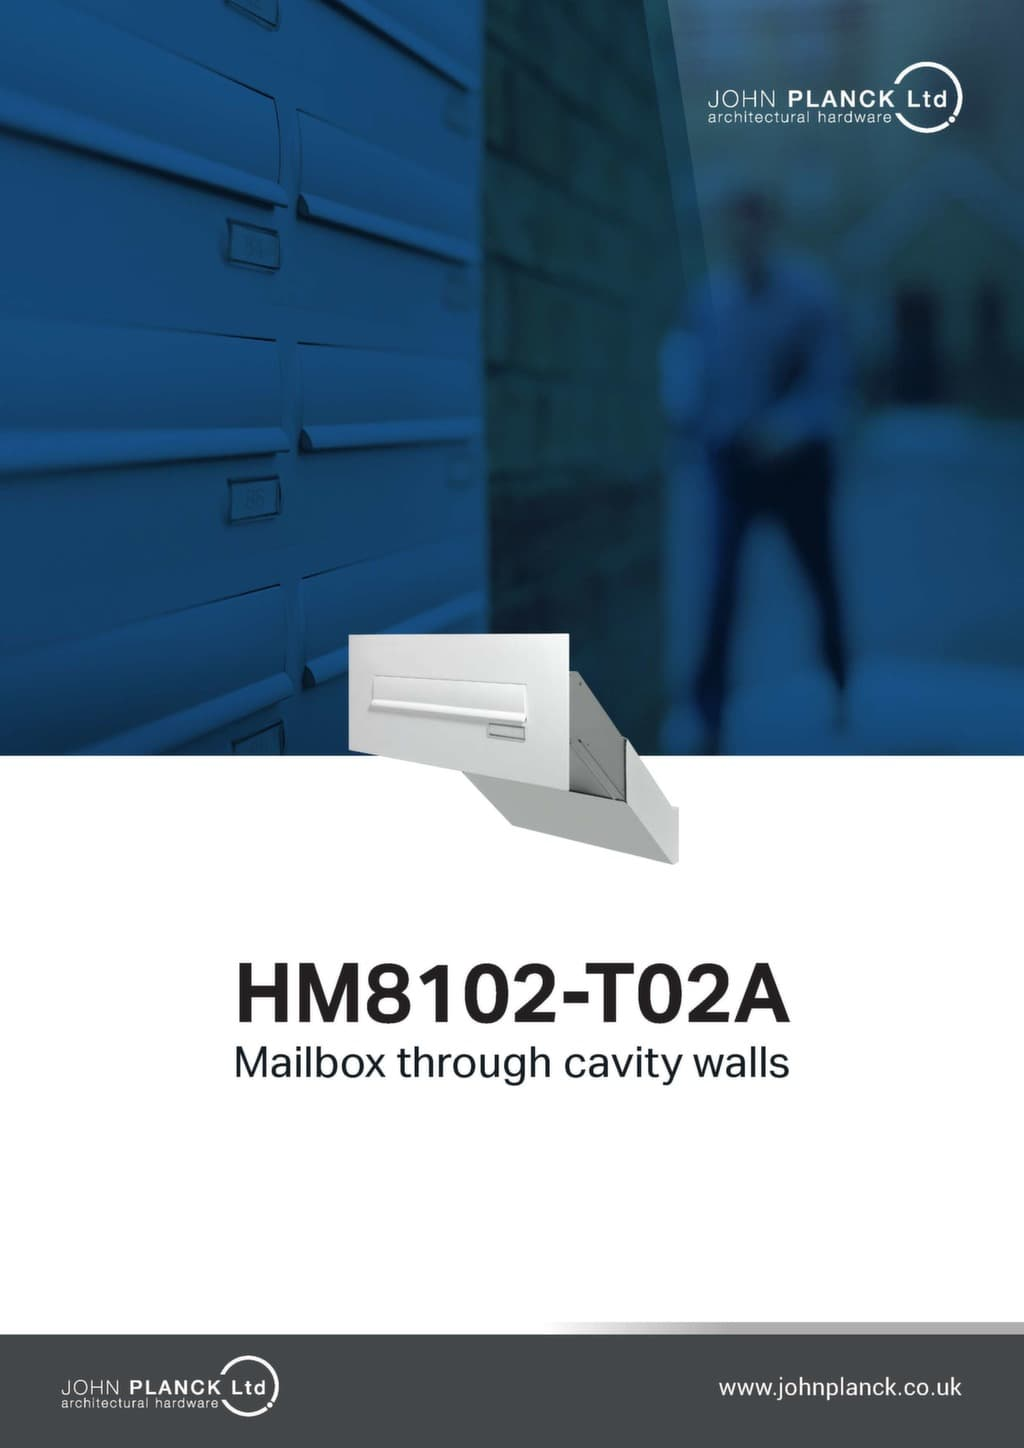 HM8102-T02A